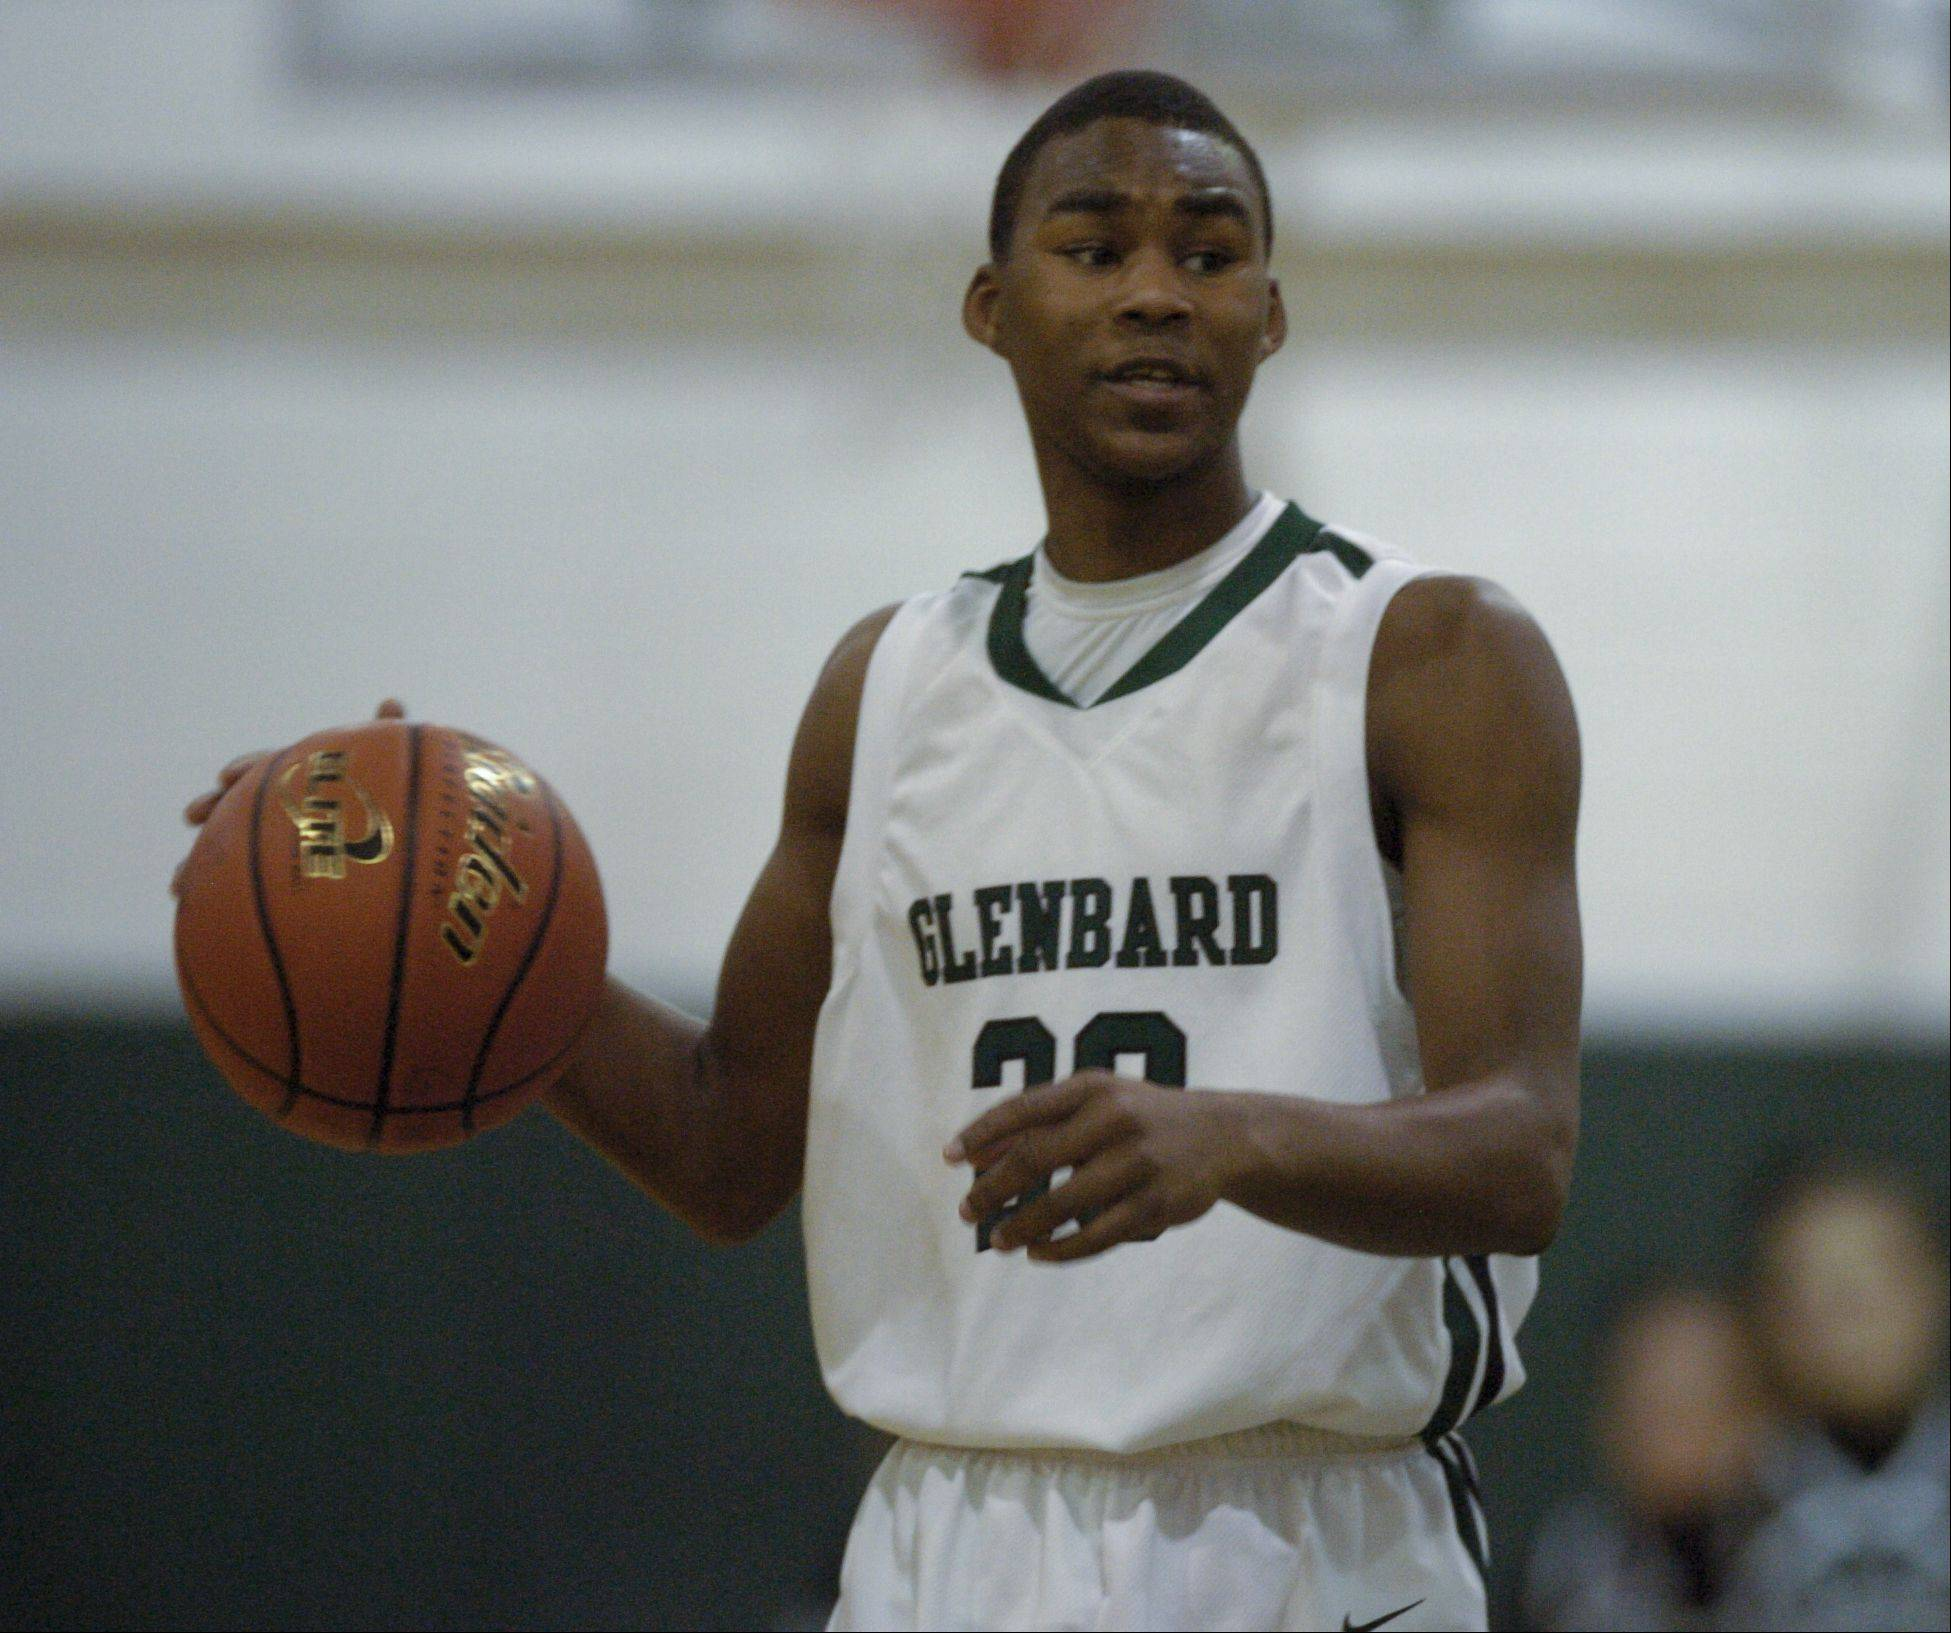 Glenbard West High School hosted Hinsdale South High School Wednesday night for boys basketball.